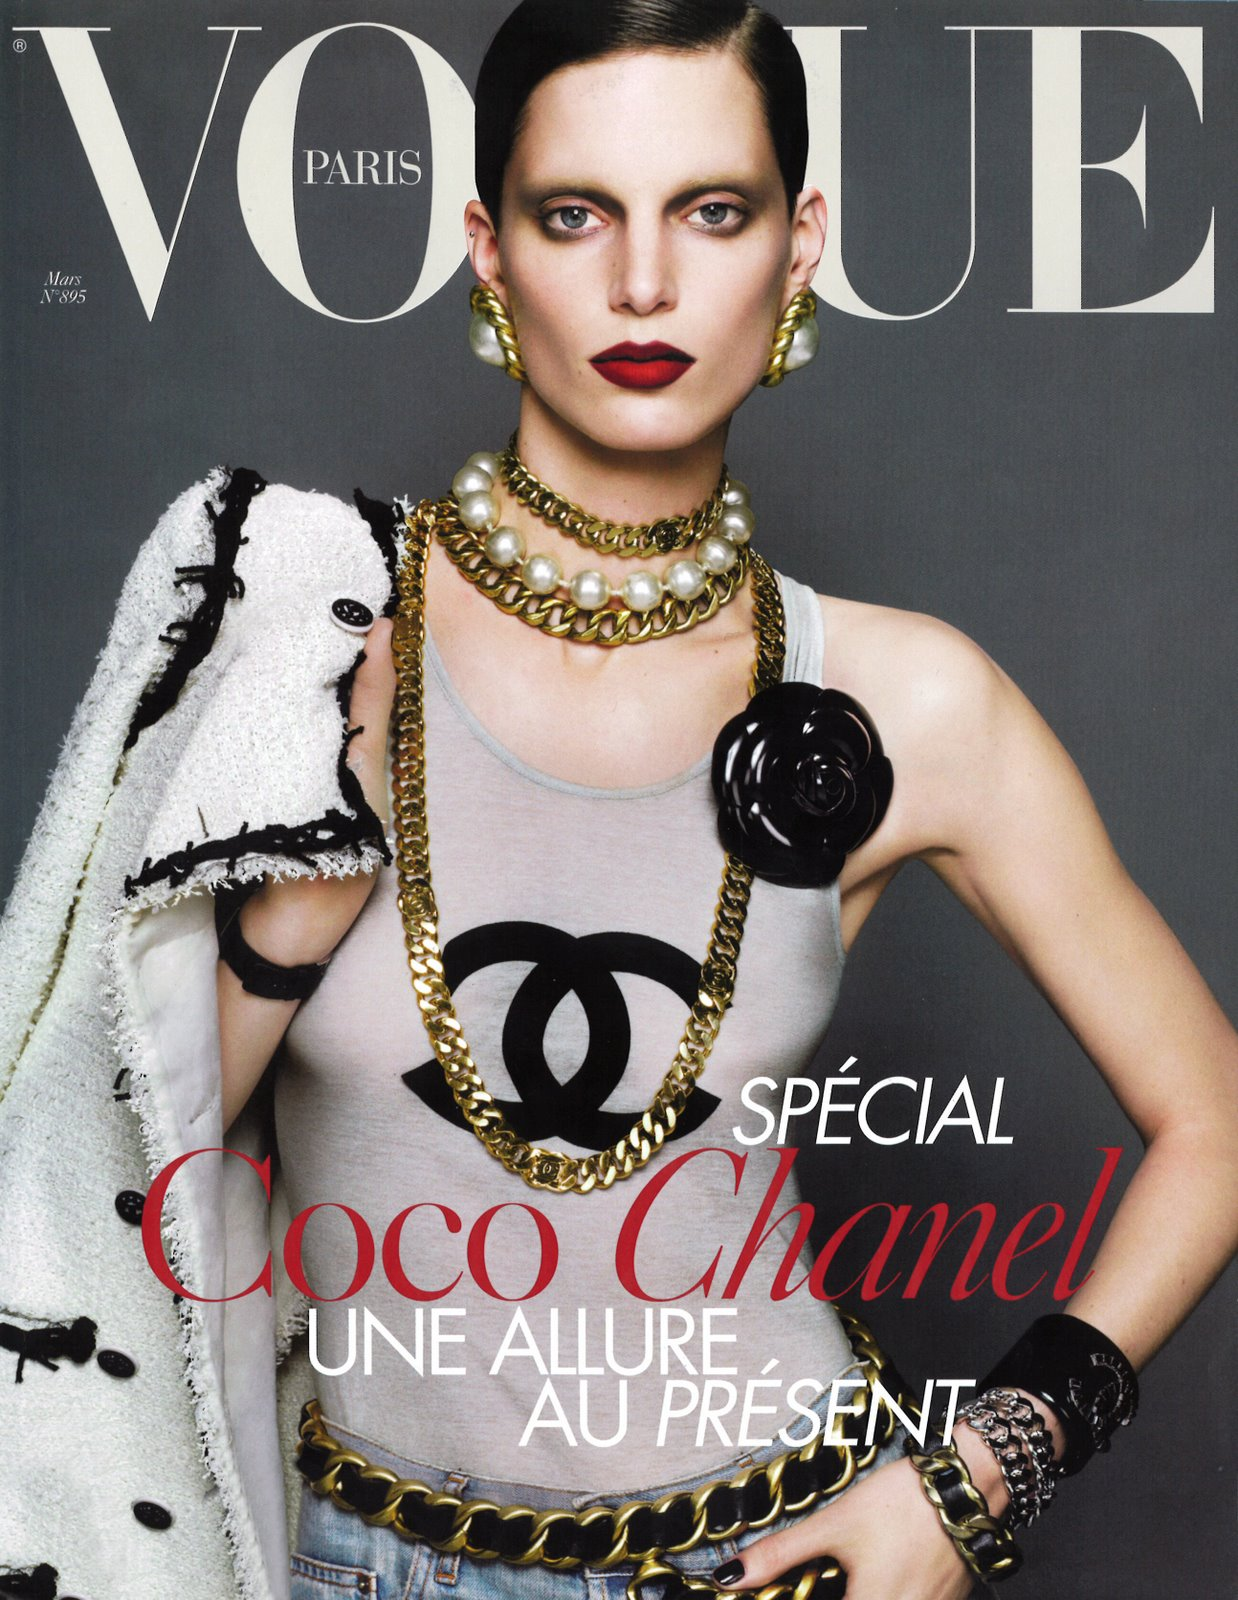 ` We Speak Fashionicano.: Best Fashion Magazines Covers